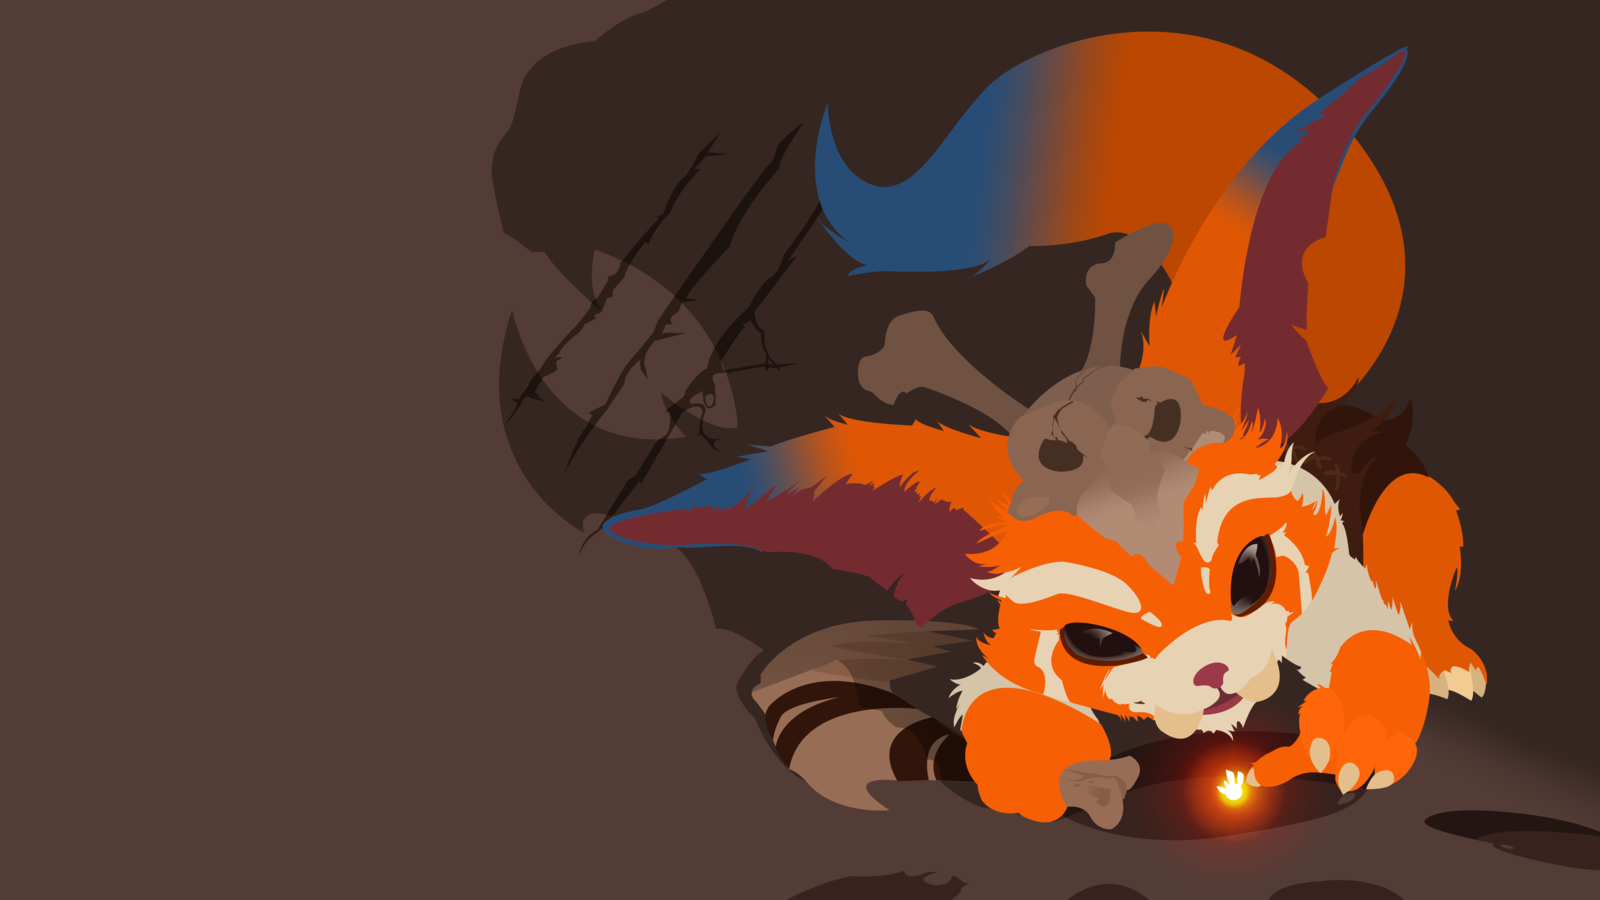 Gnar Minimalistic Fan Art - League of Legends Wallpapers